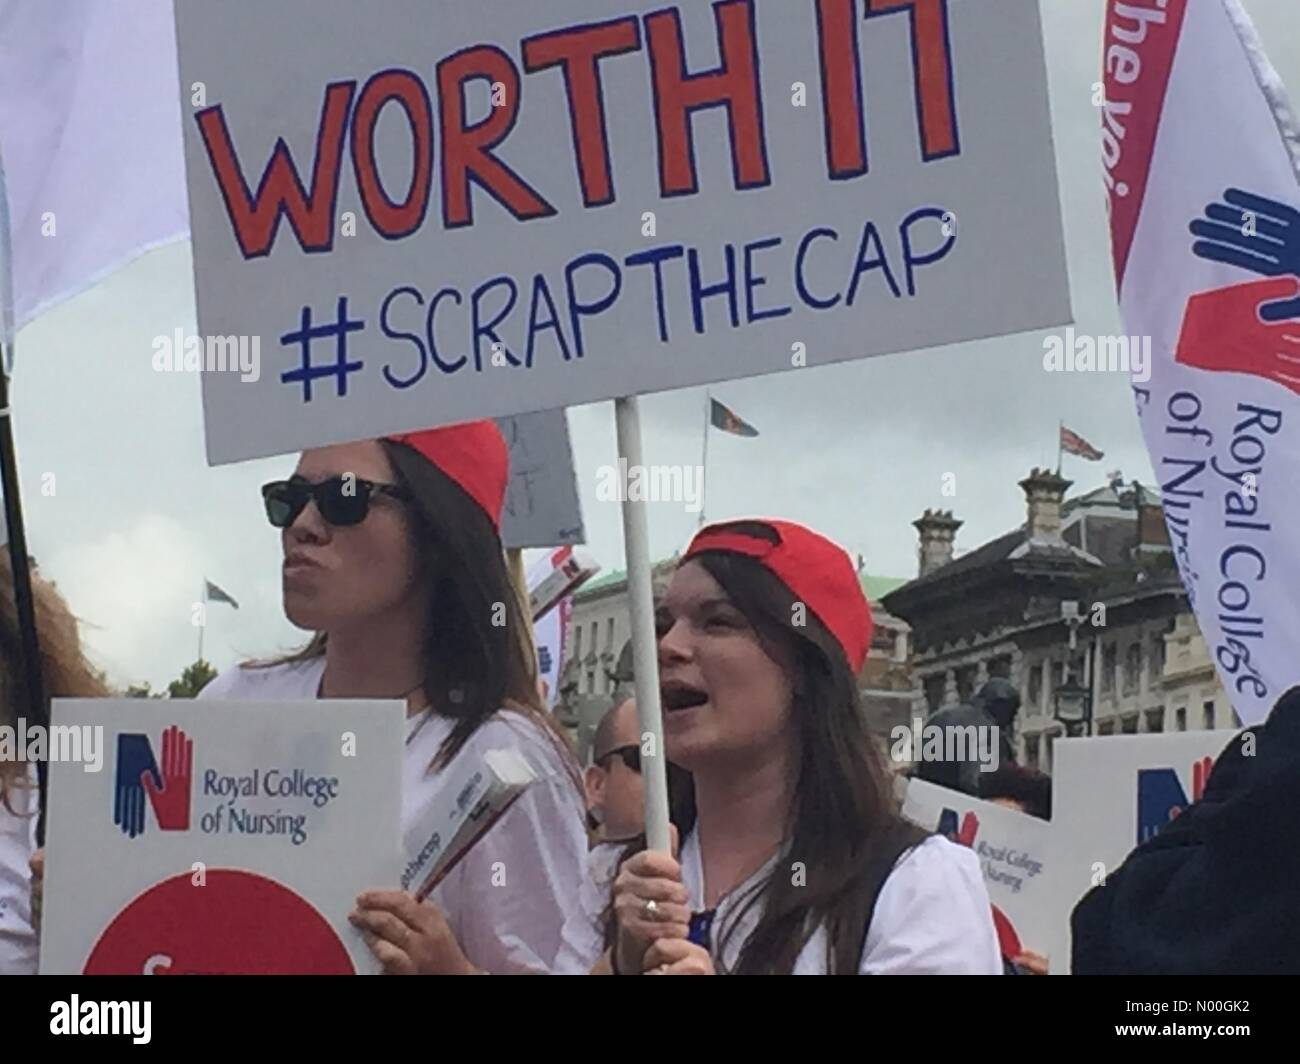 A302, London, UK. 06th Sep, 2017. Thousands of nurses, healthcare workers and members of the public gathered in Stock Photo